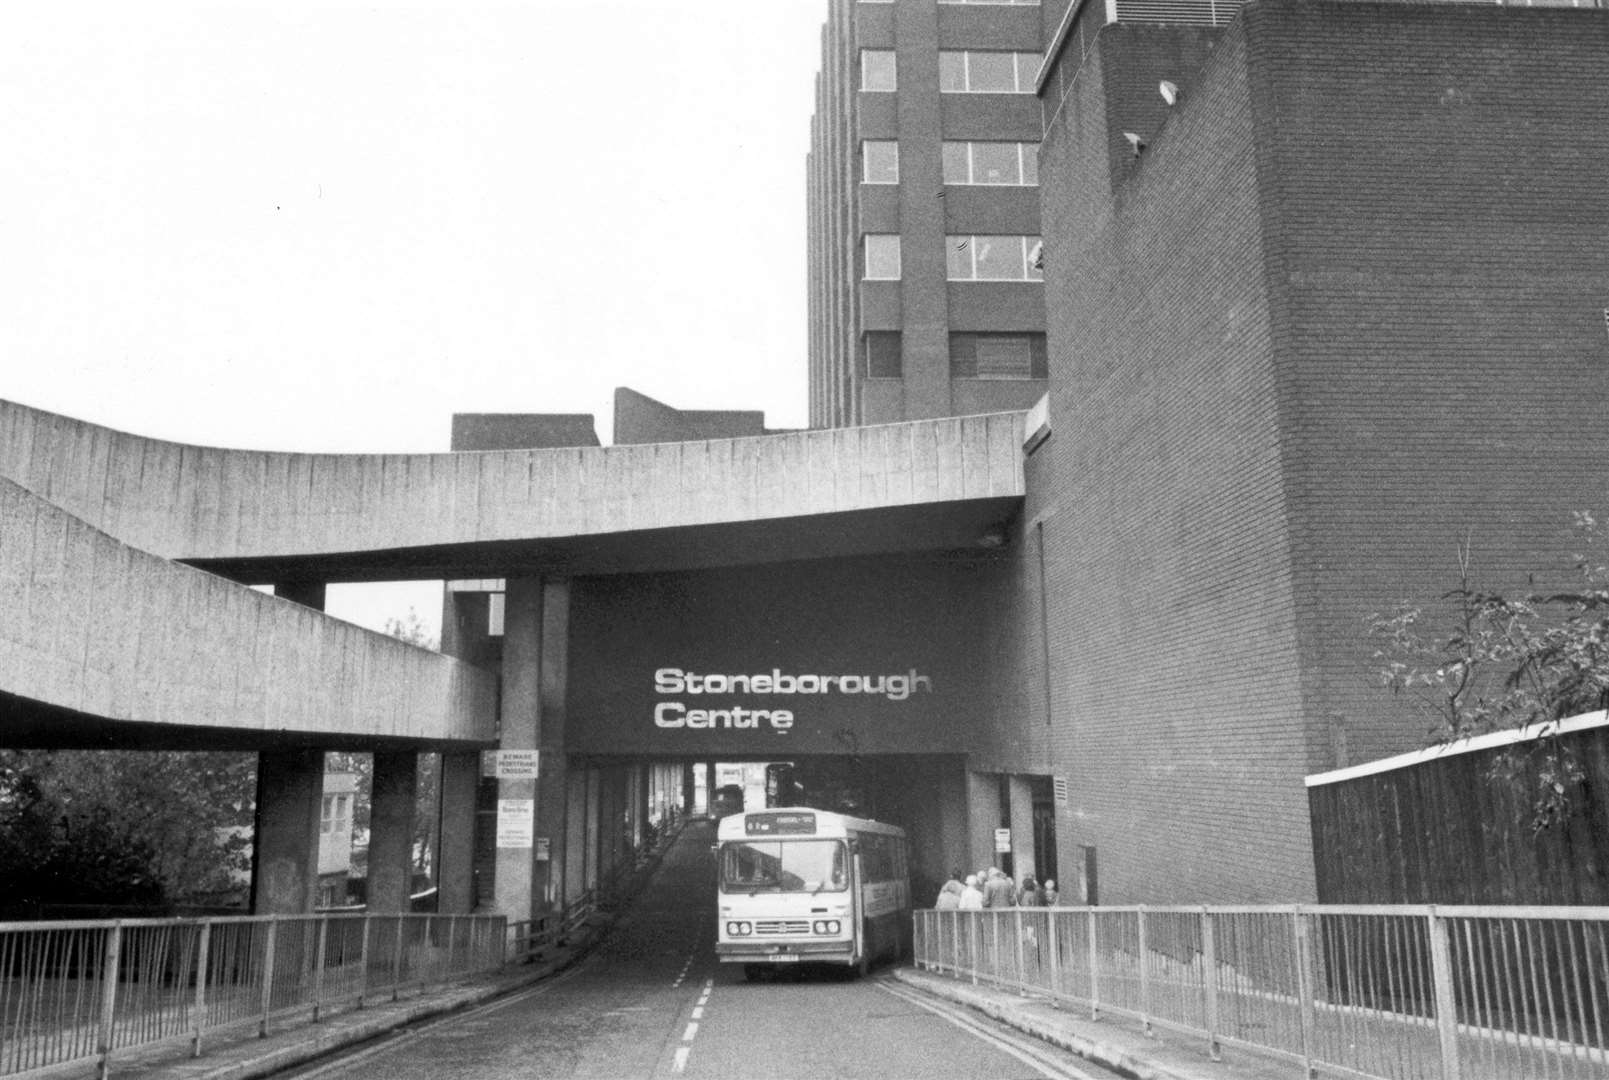 A bus leaves The Stoneborough Centre in 1988